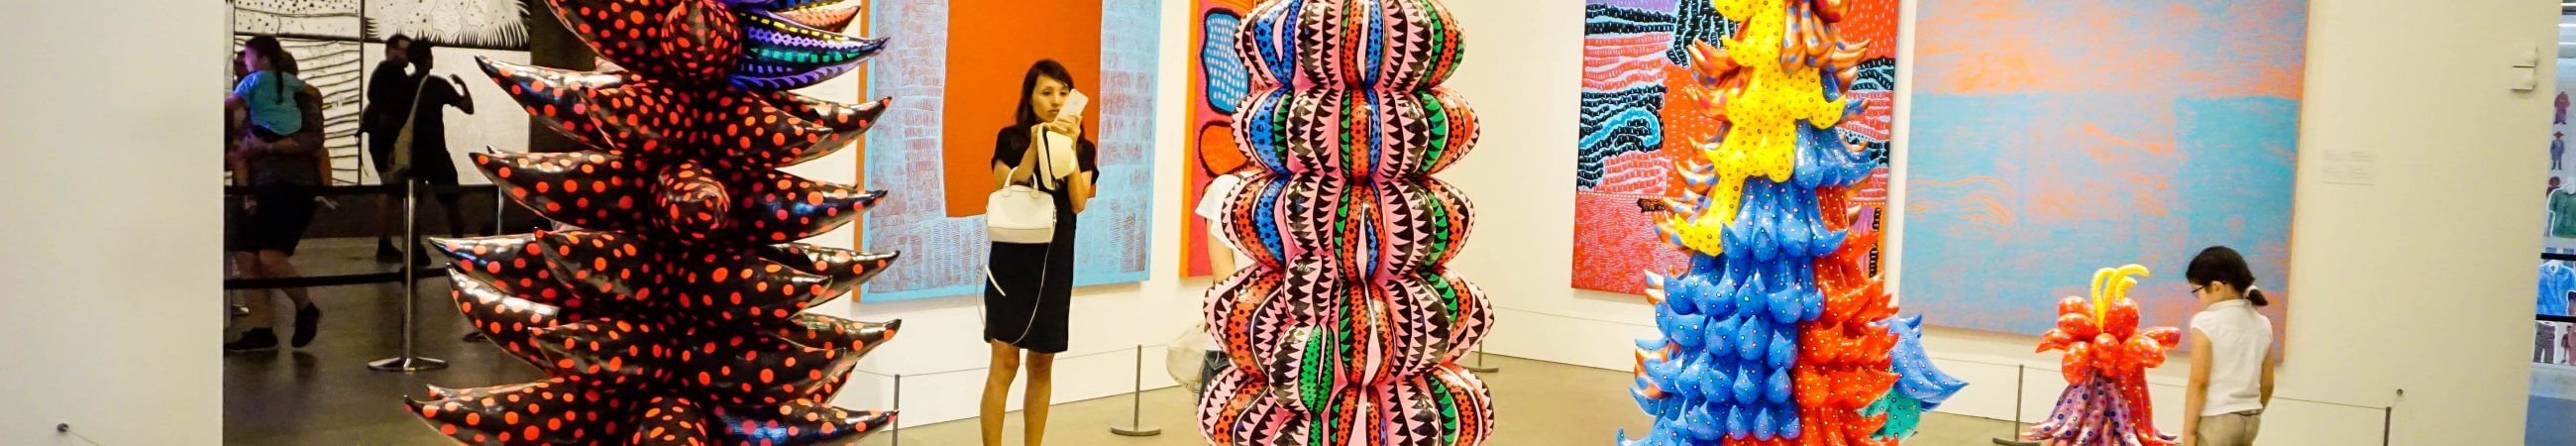 HOT: Yayoi Kusama: Life Is The Heart Of The Rainbow + Me, Myselfie And I, Gallery Of Modern Art, Stanley Place, South Brisbane